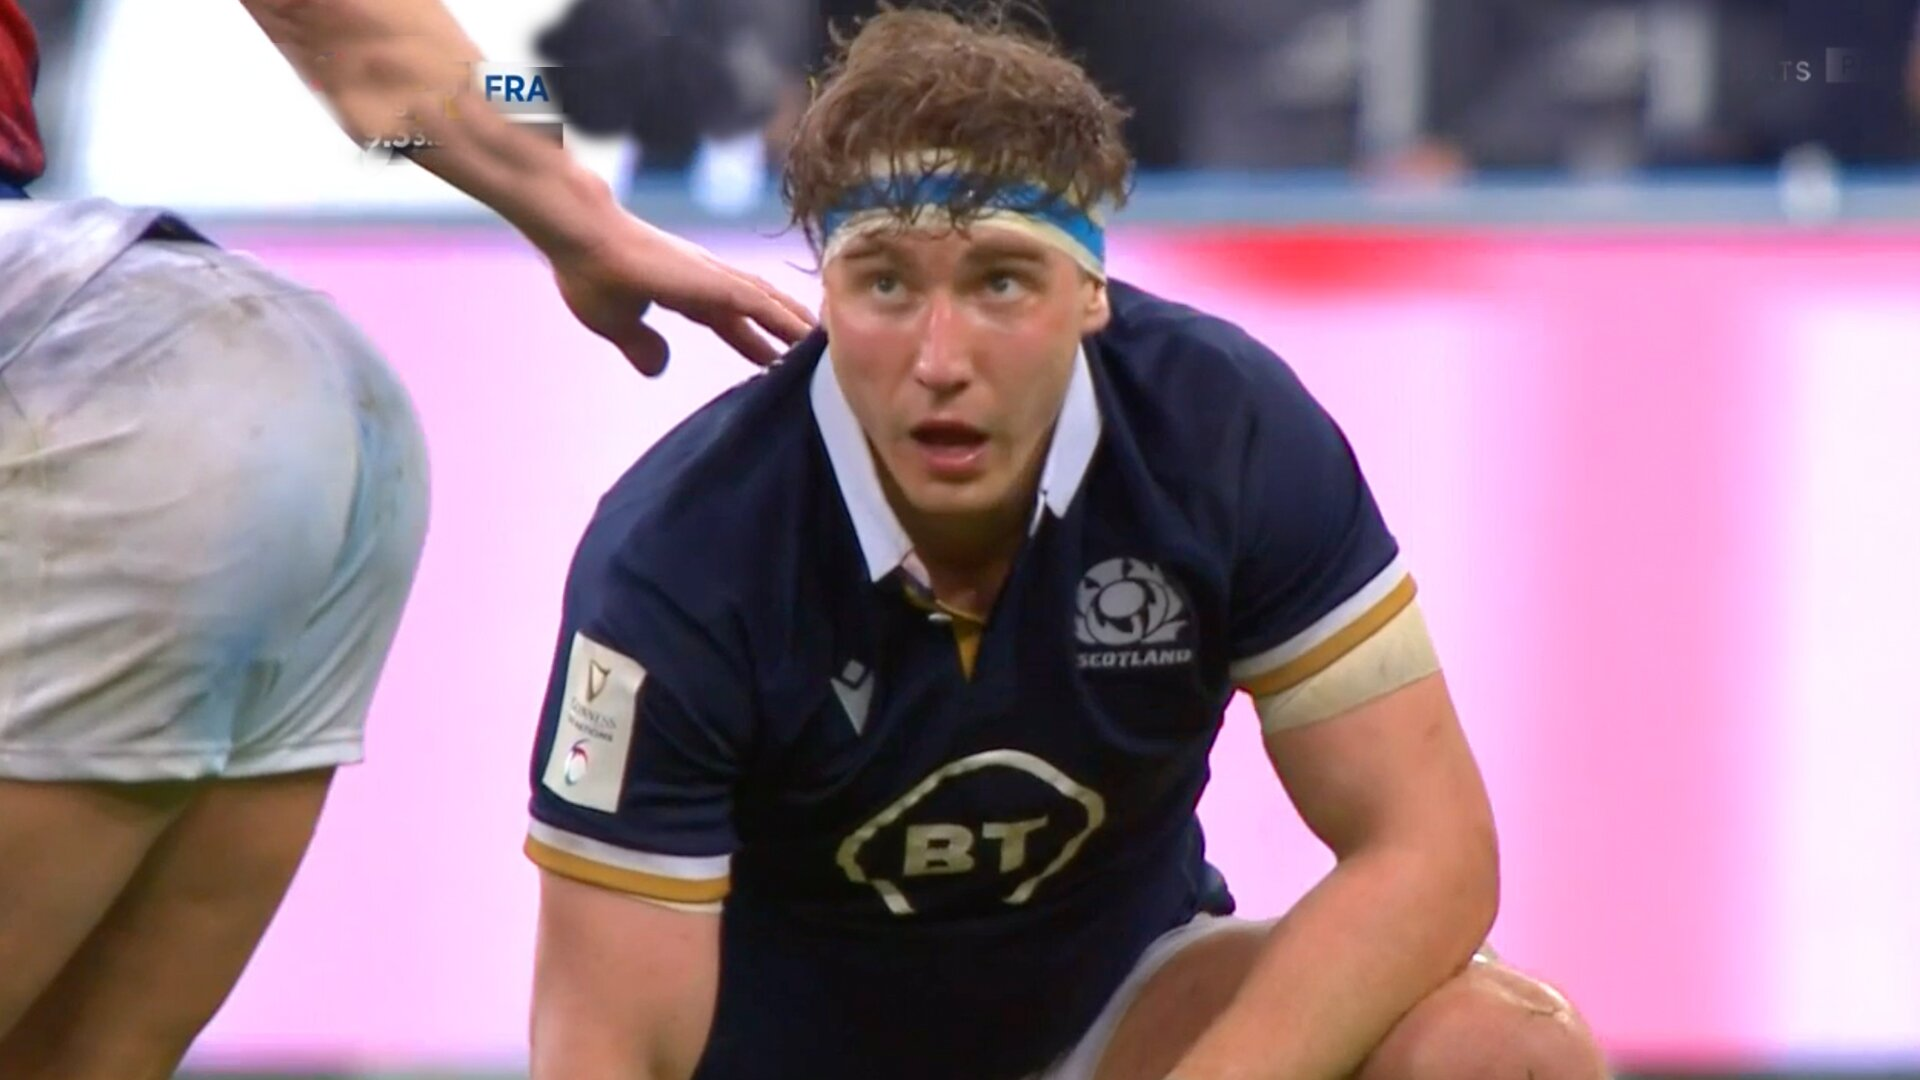 The reason why we officially endorse Jamie Ritchie for the British & Irish Lions